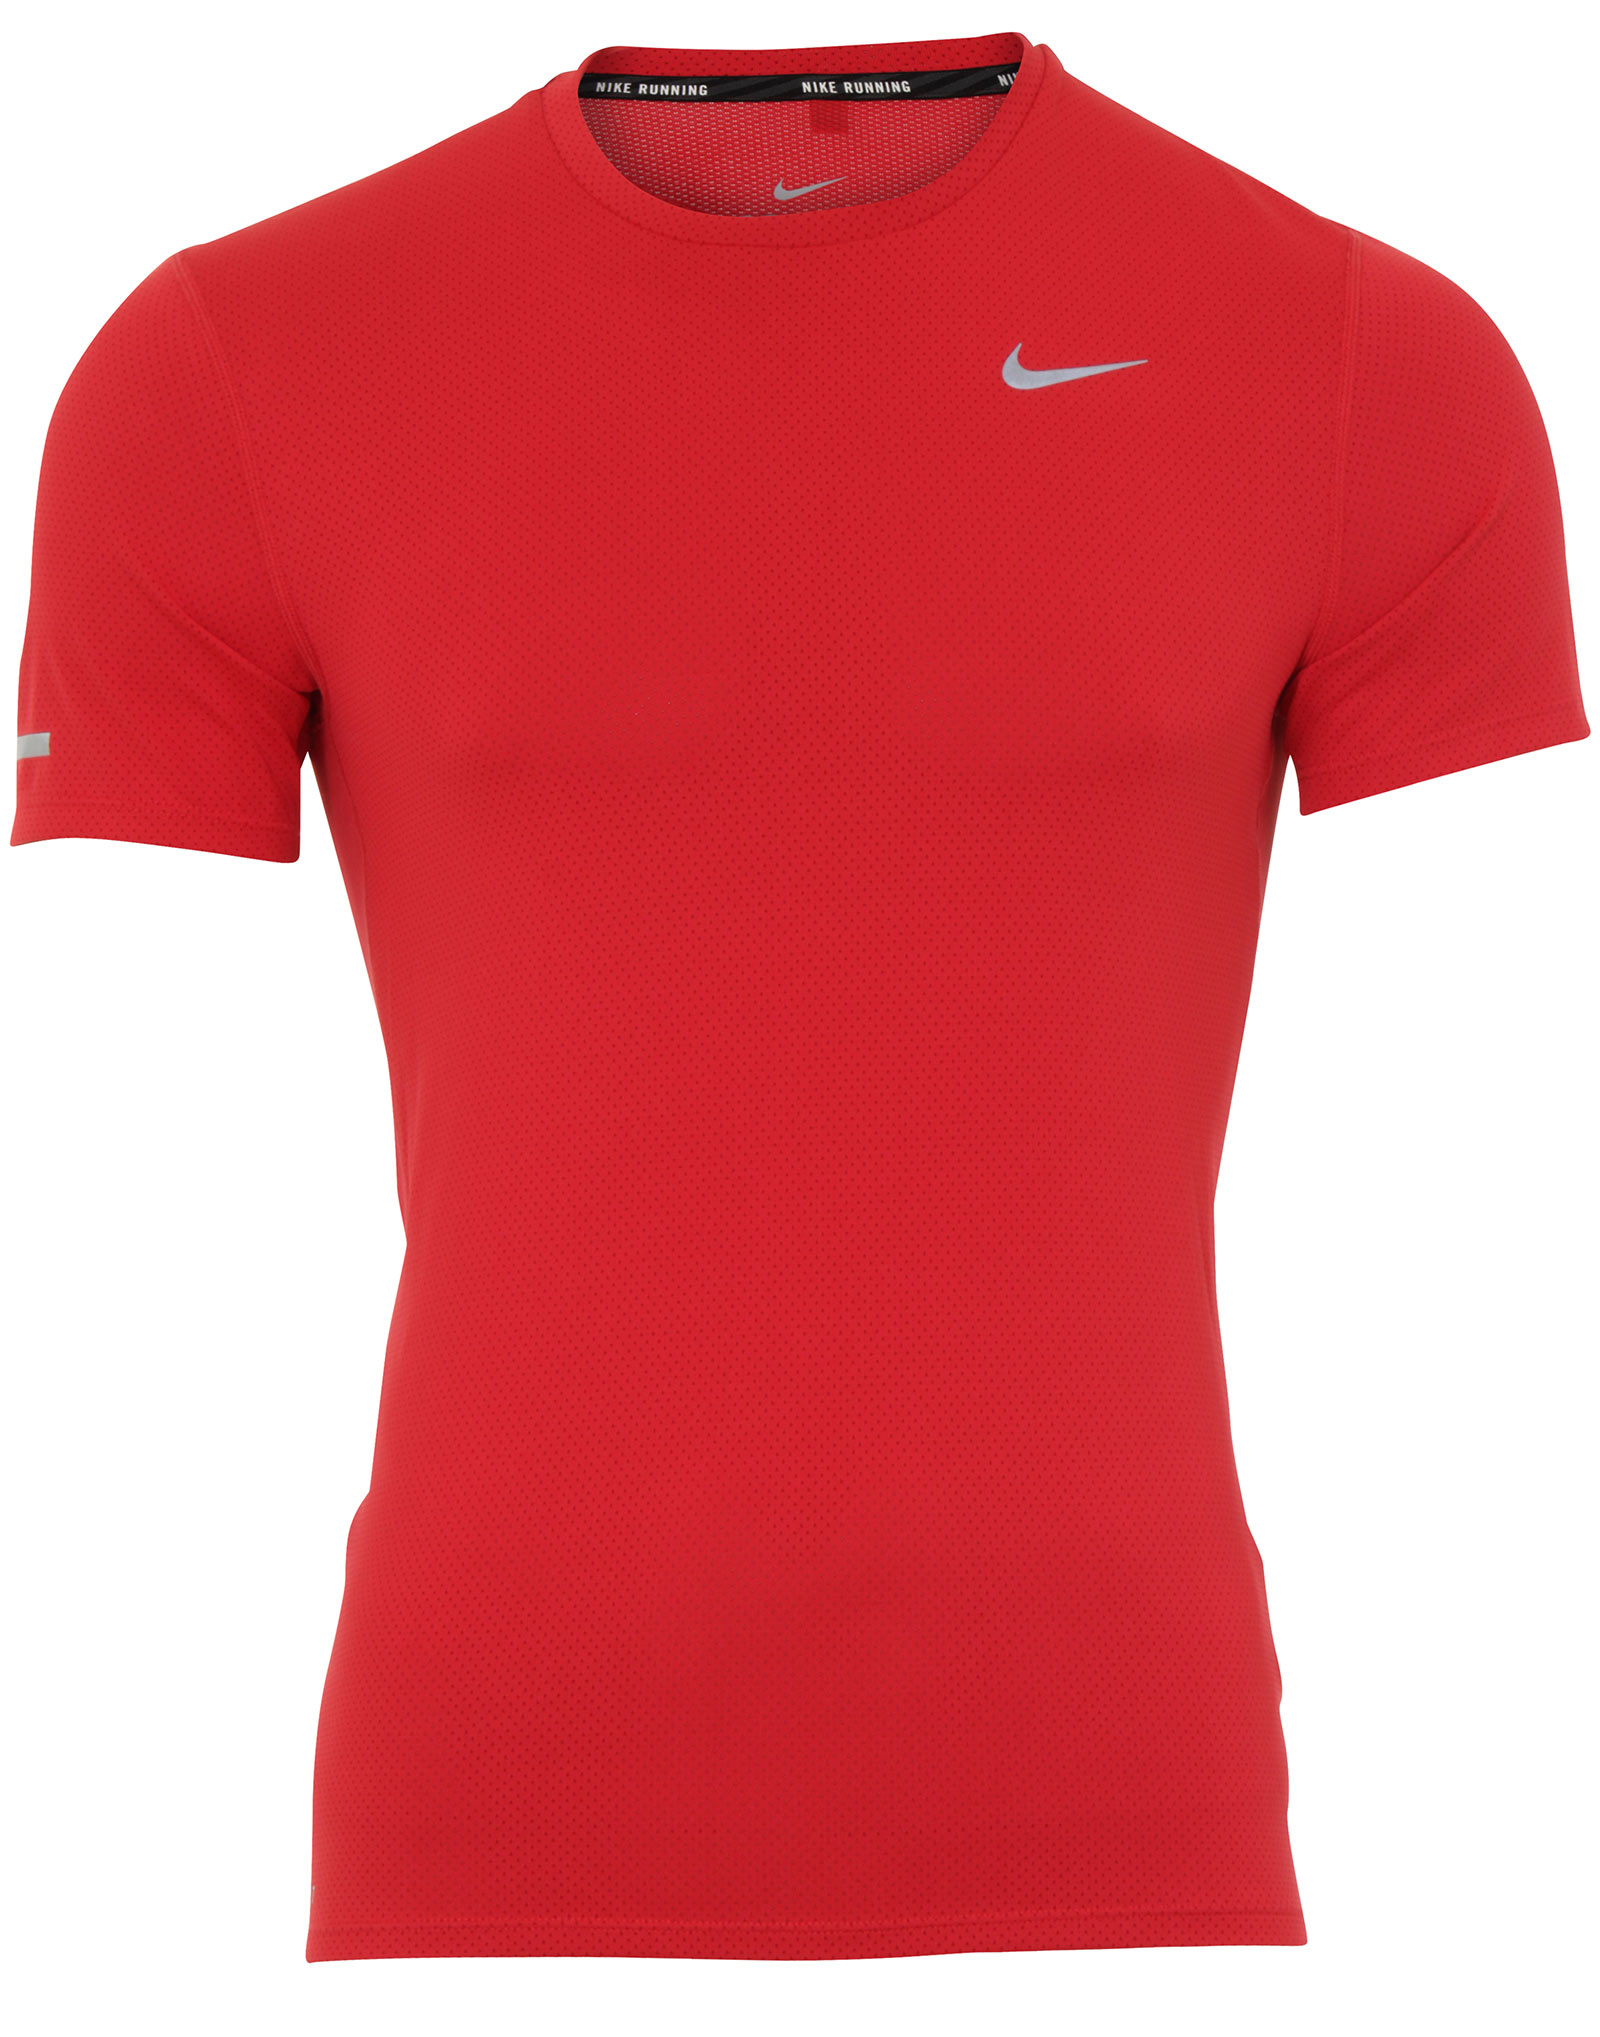 New Nike Dri Fit Contour Red Mens Running Short Sleeve Top